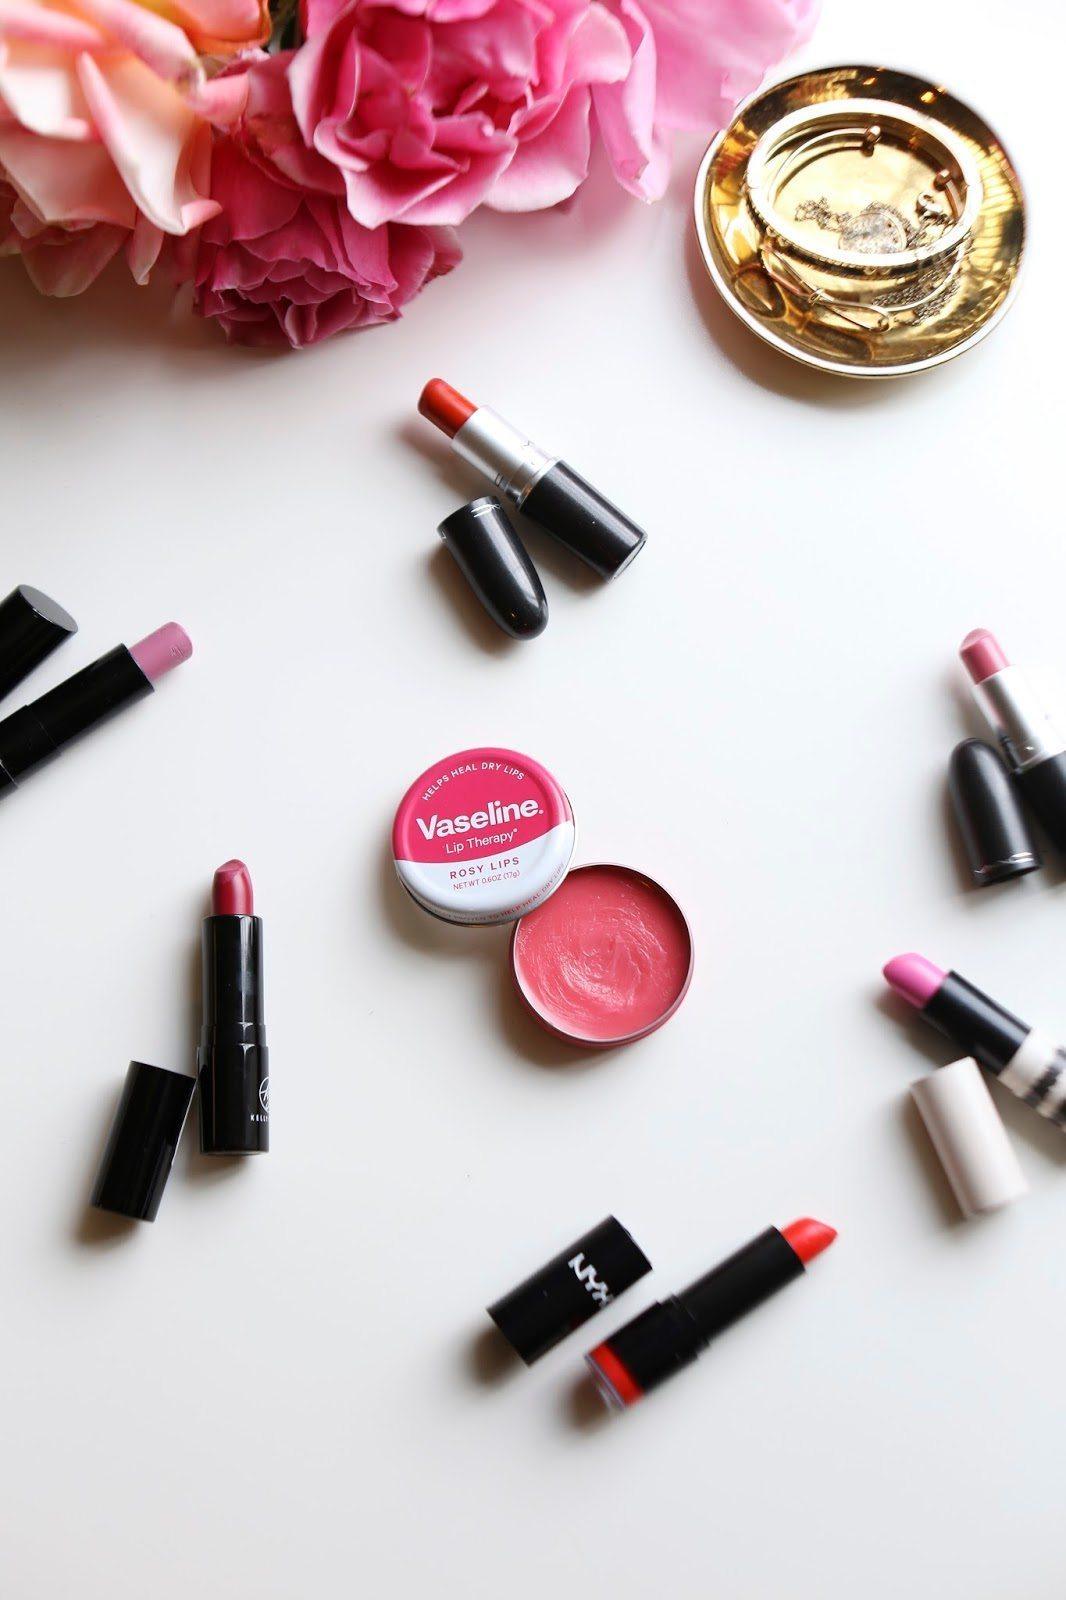 HOW TO KEEP YOUR LIPS VALENTINE'S DAY READY